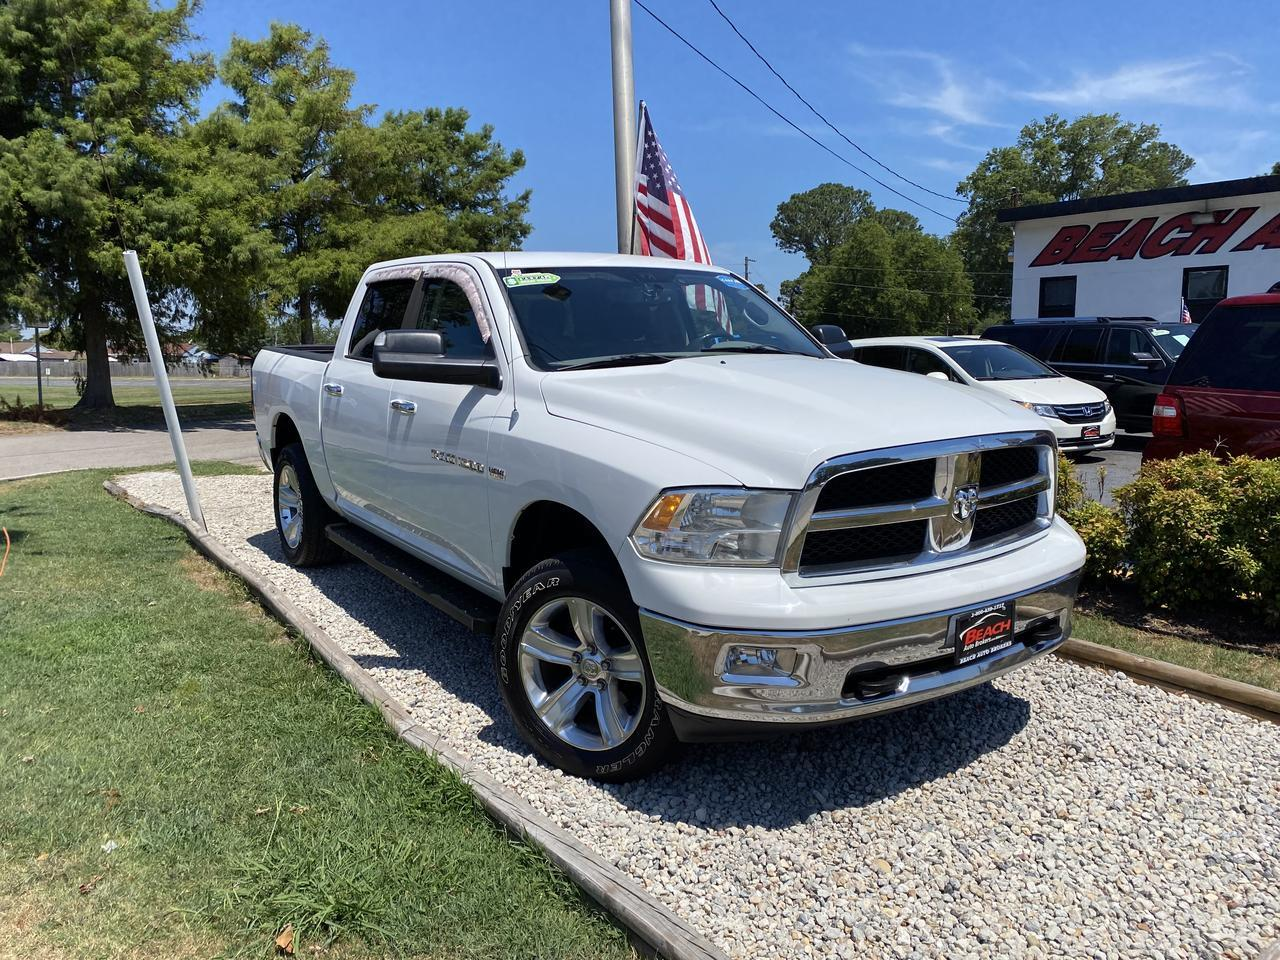 2012 DODGE RAM 1500 BIG HORN CREW CAB 4X4, WARRANTY, RUNNING BOARDS, TOW PKG, A/C, CLEAN CARFAX!